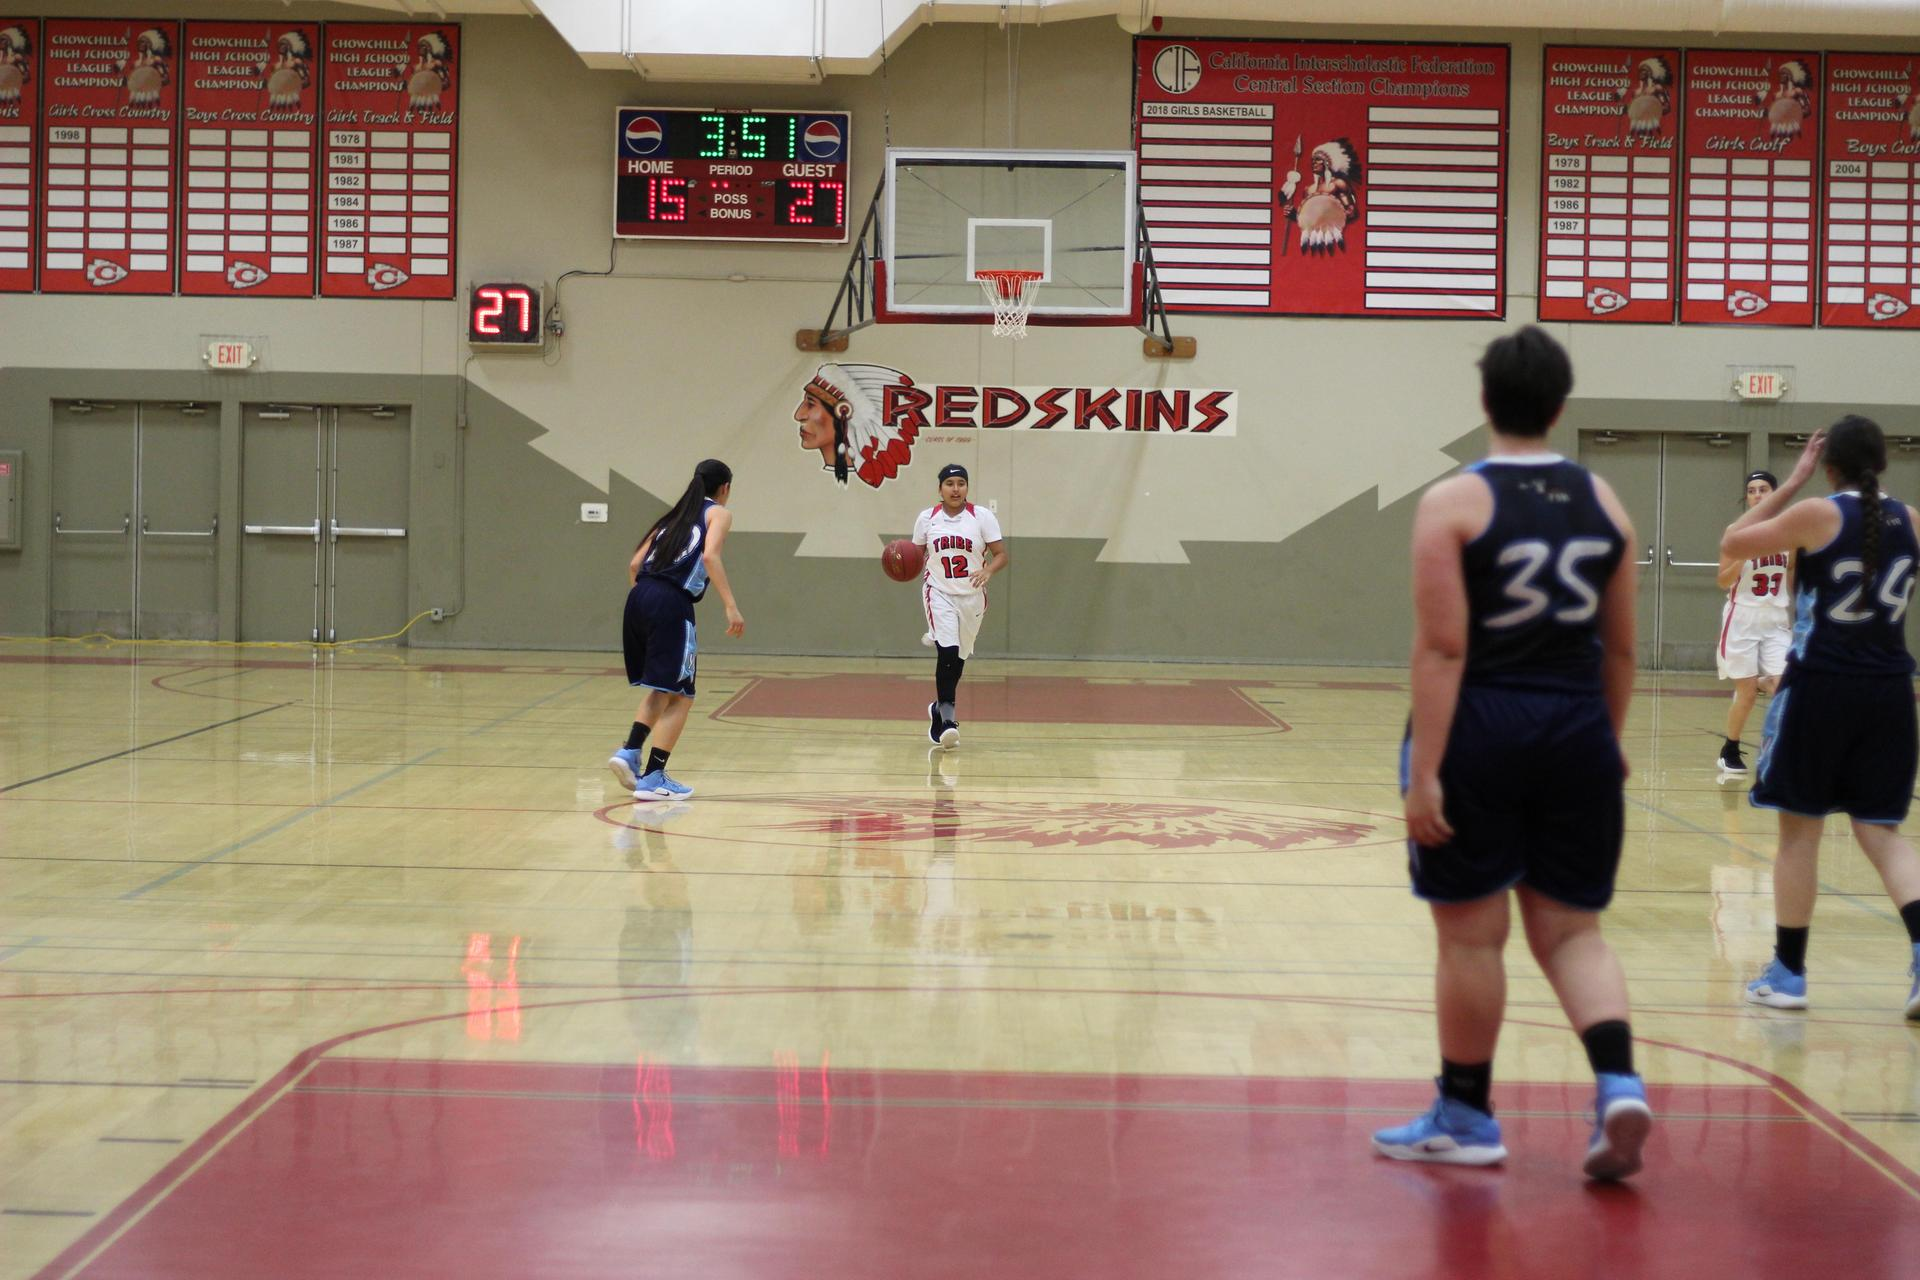 Chowchilla High Athletes at Basketball Game vs Yosemite